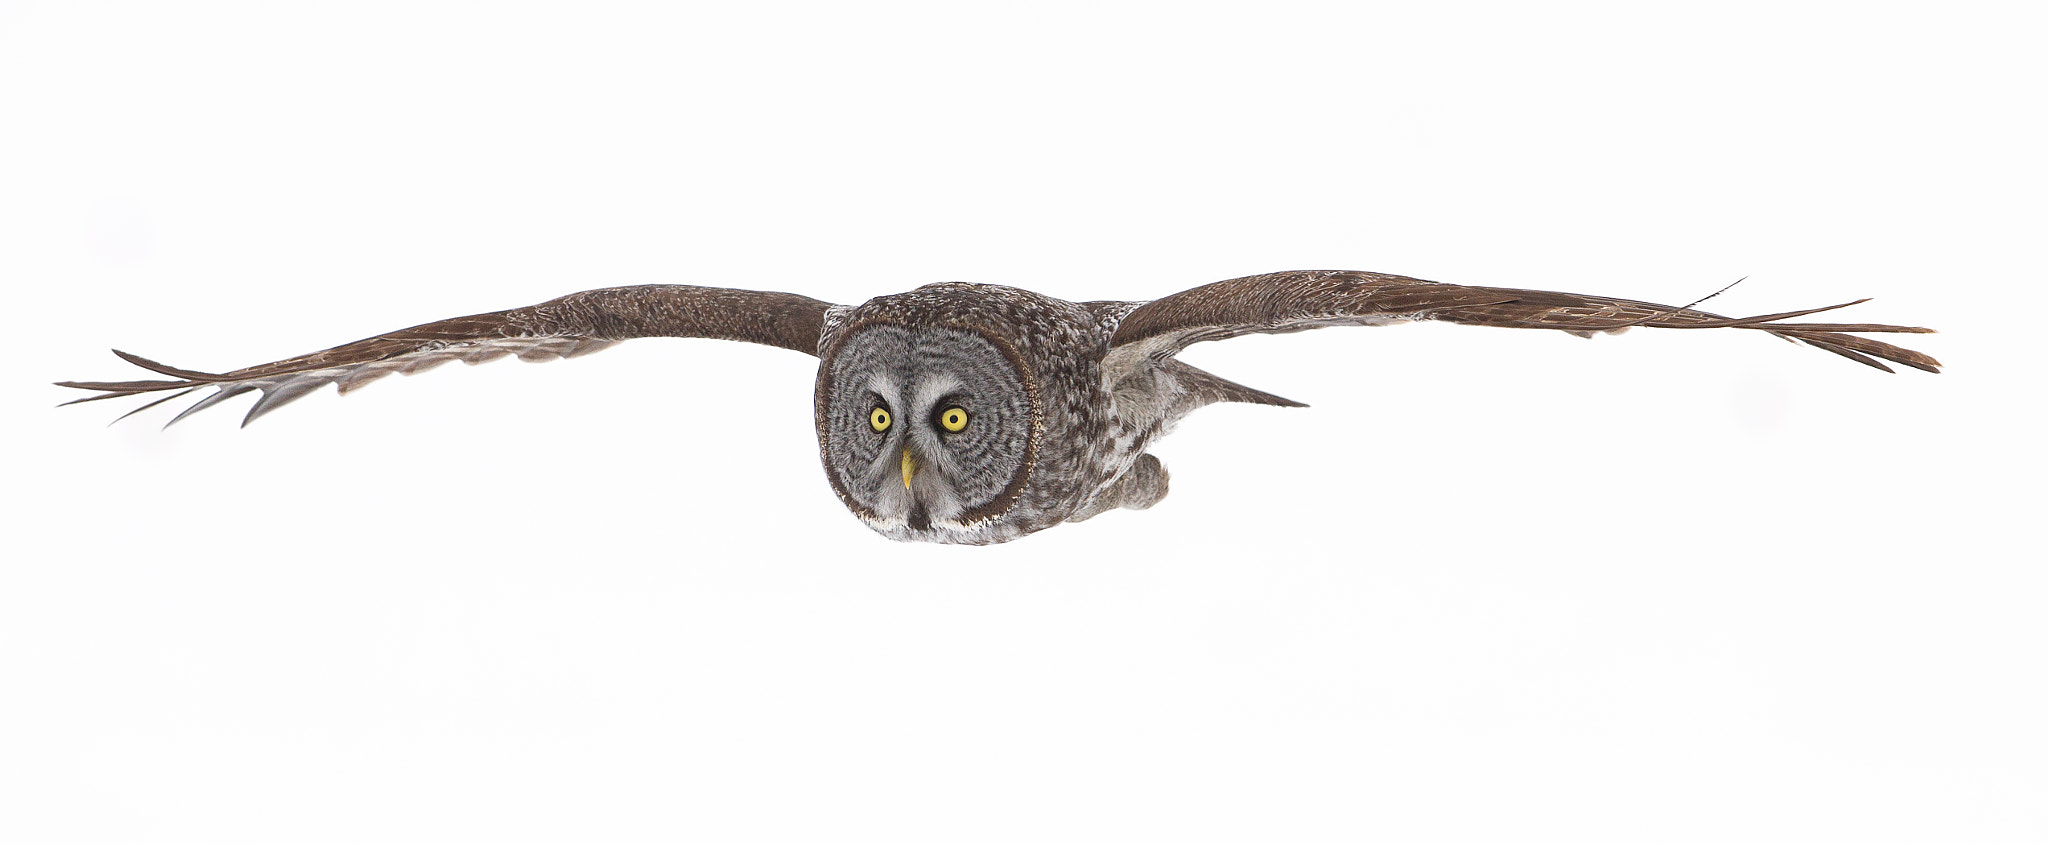 Photograph Soaring - Great Grey Owl by Jim Cumming on 500px